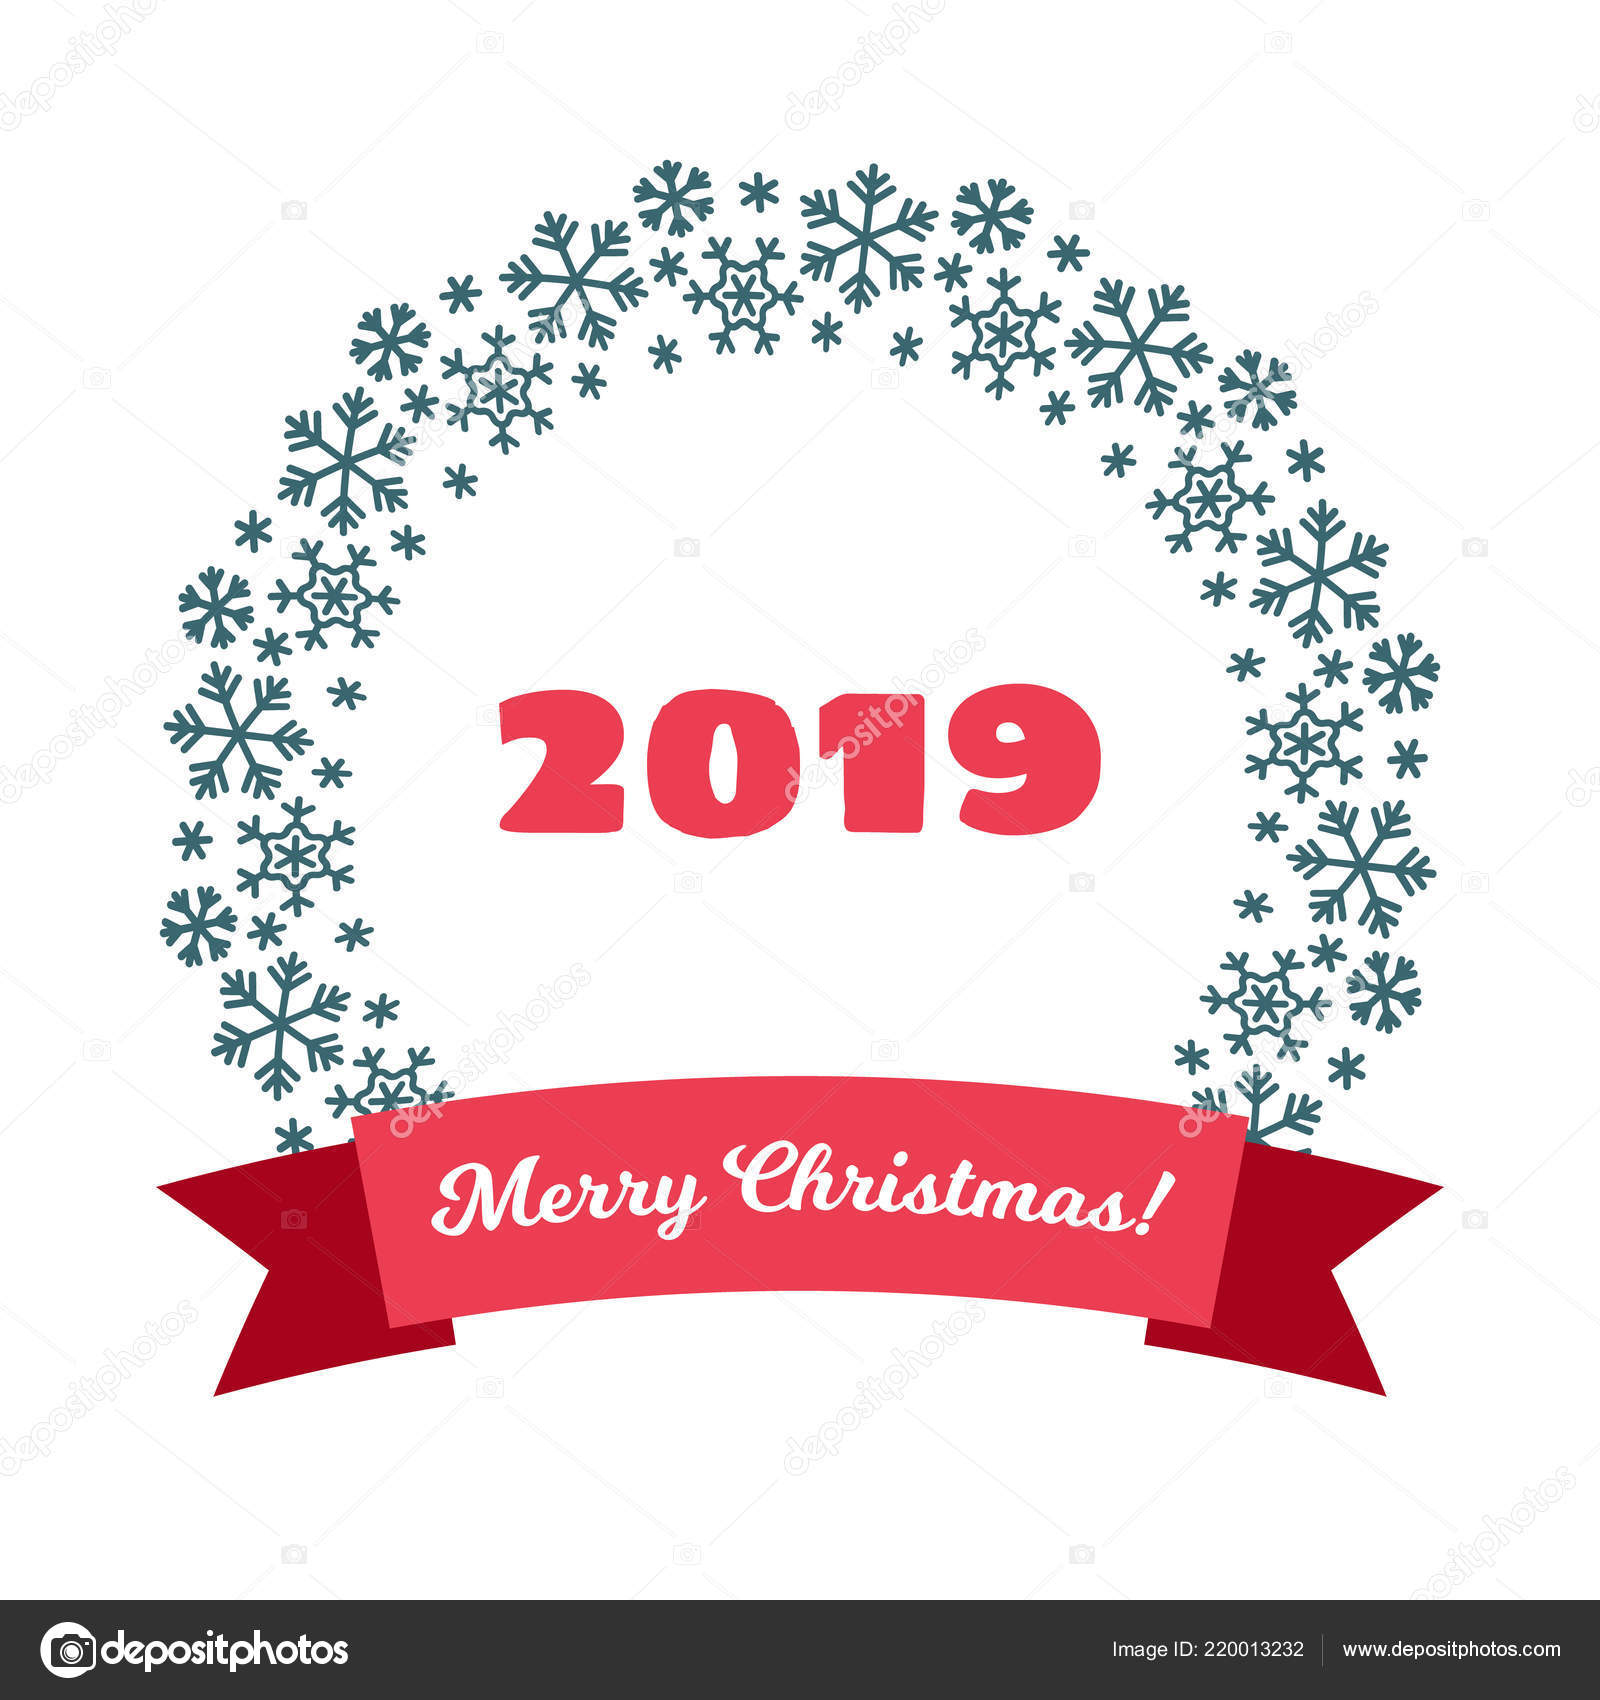 Merry Christmas Happy New Year 2019 Greeting Card — Stock Vector ...